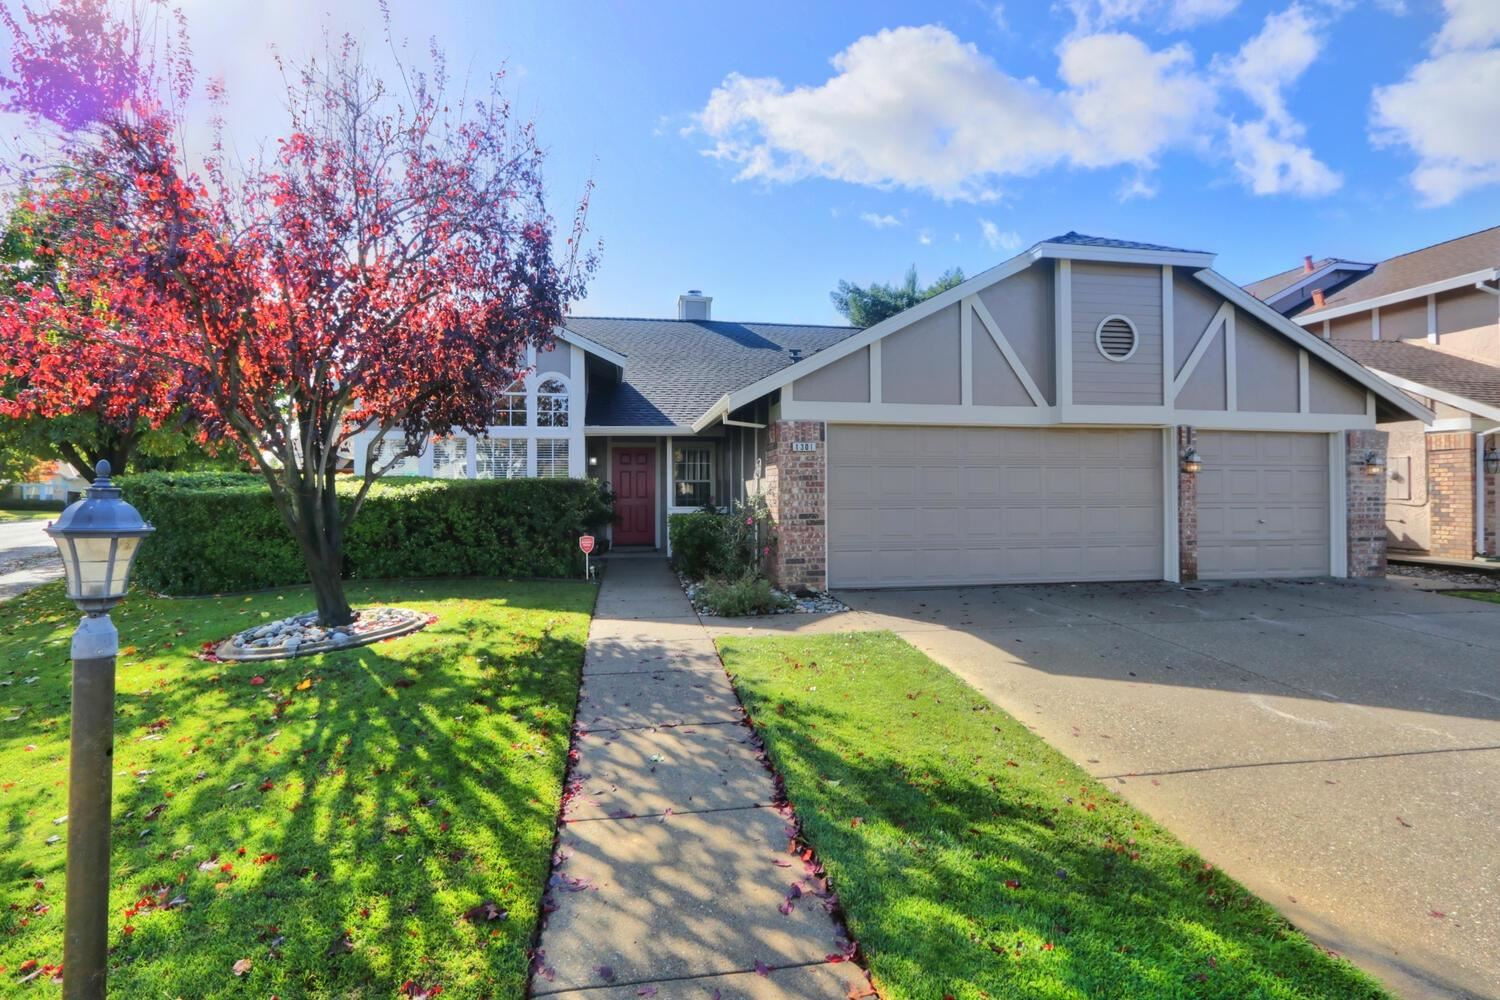 Photo of 1301 Muscat Circle, Roseville, CA 95747 (MLS # 221137018)